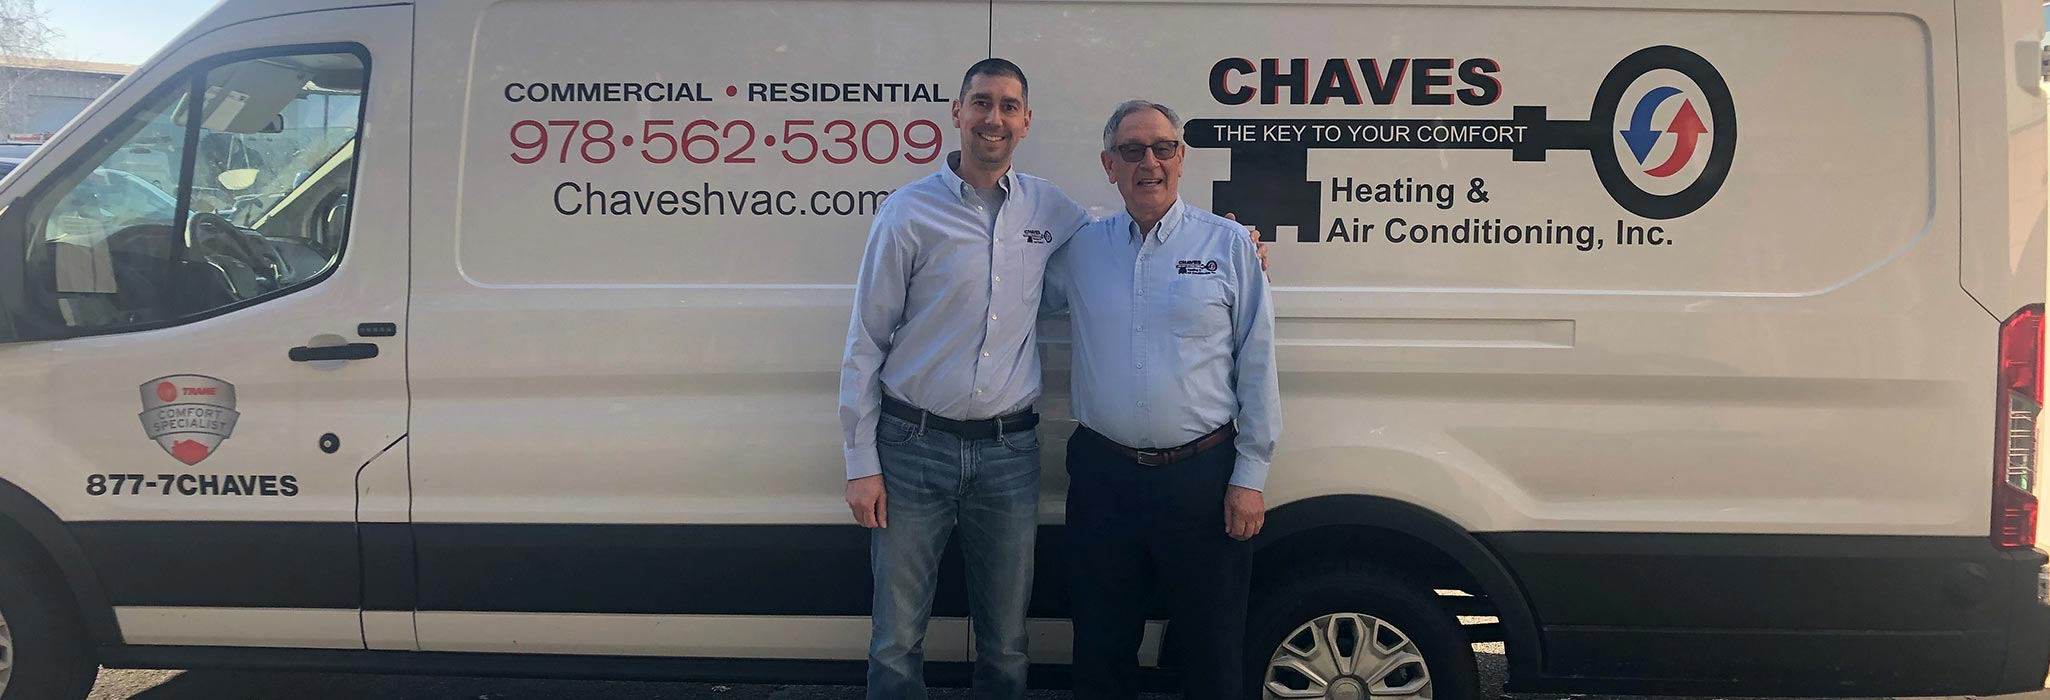 Manny & Andre Chaves | Chaves HVAC